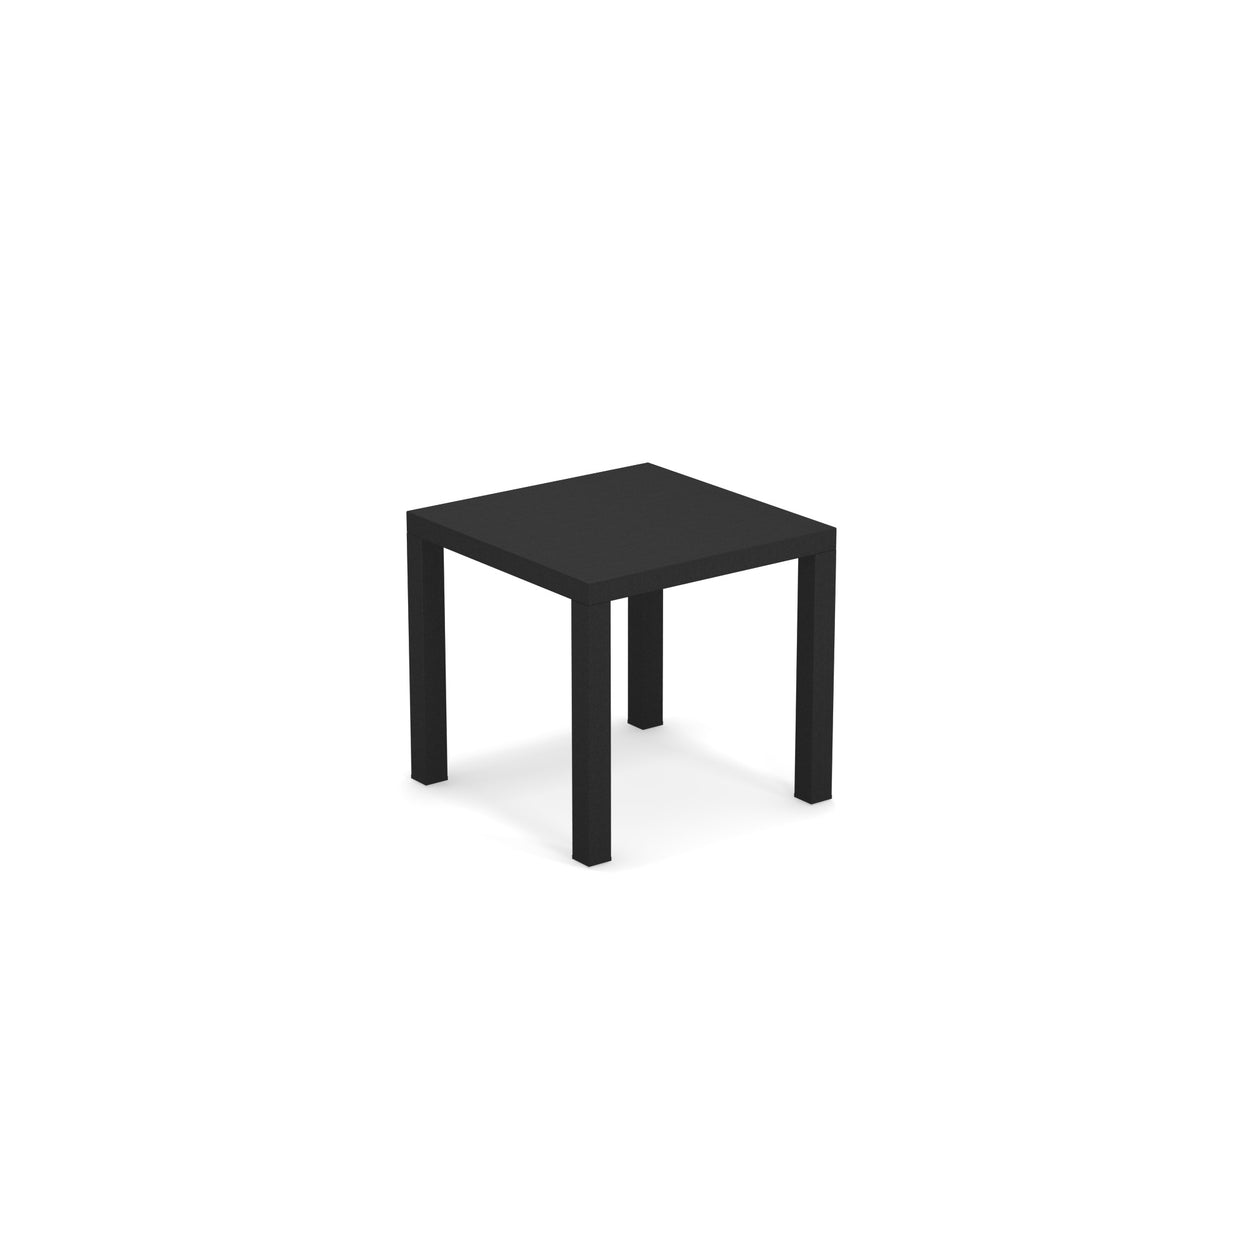 EMU Round Coffee Table (2 Sizes, Square Shape)